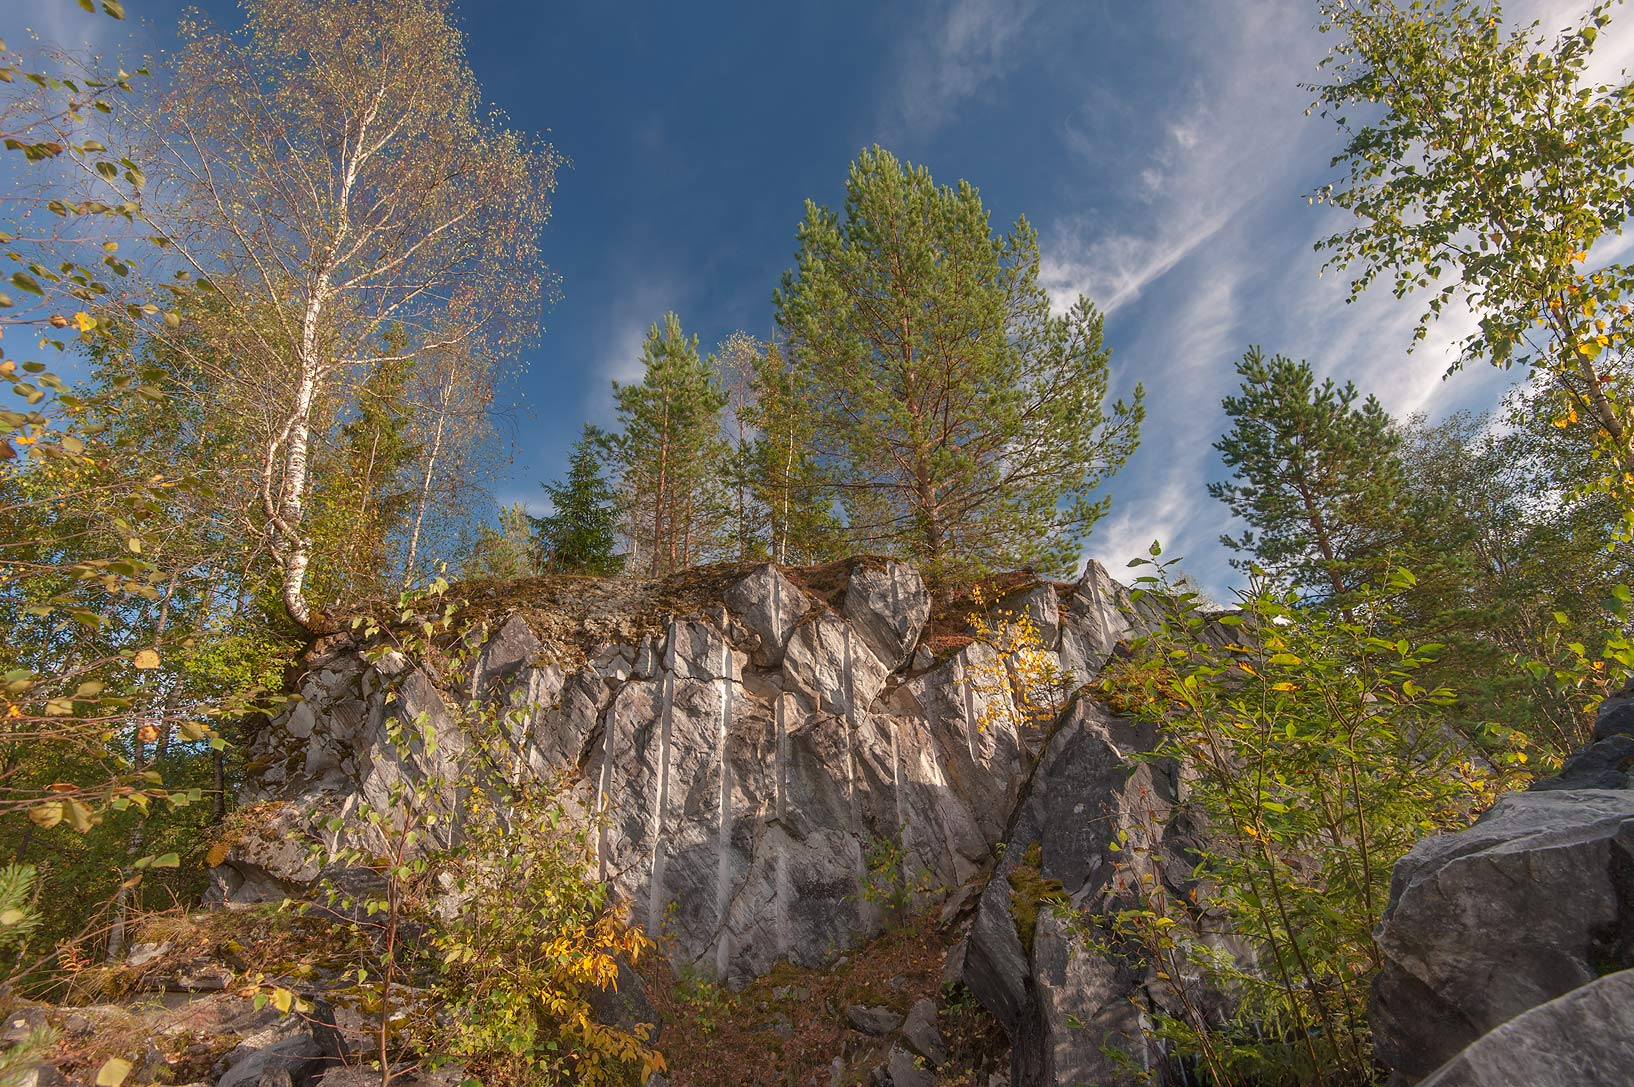 Marble cliffs near a quarry in Ruskeala Mountain Park. Karelia, Russia